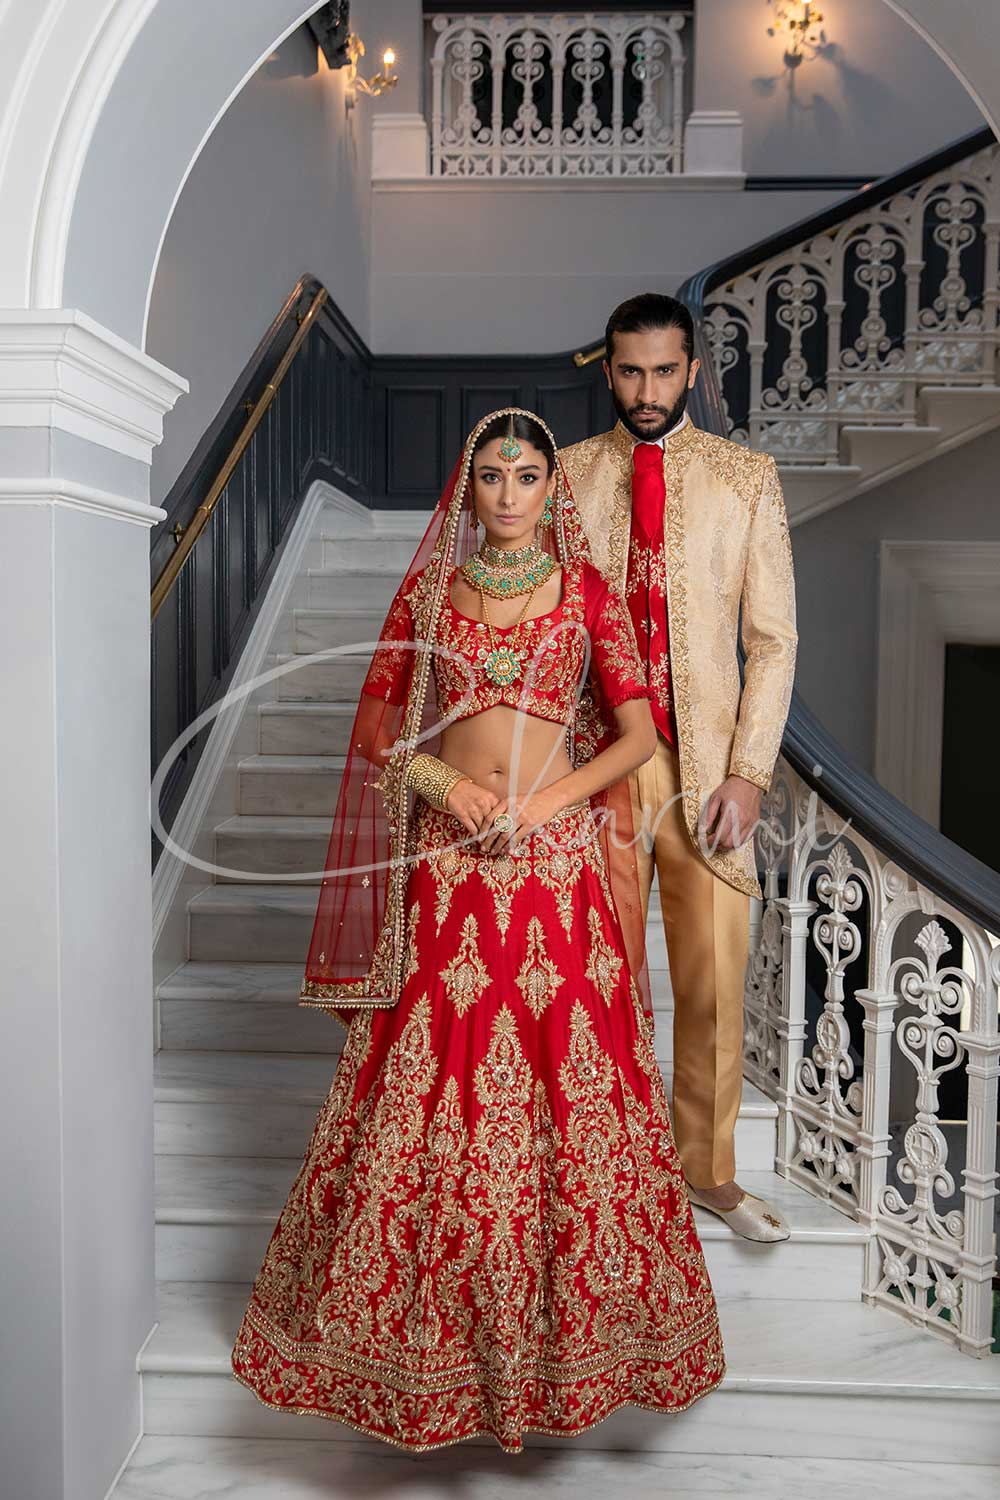 Bridal Lengha & Grooms Sherwani in UK